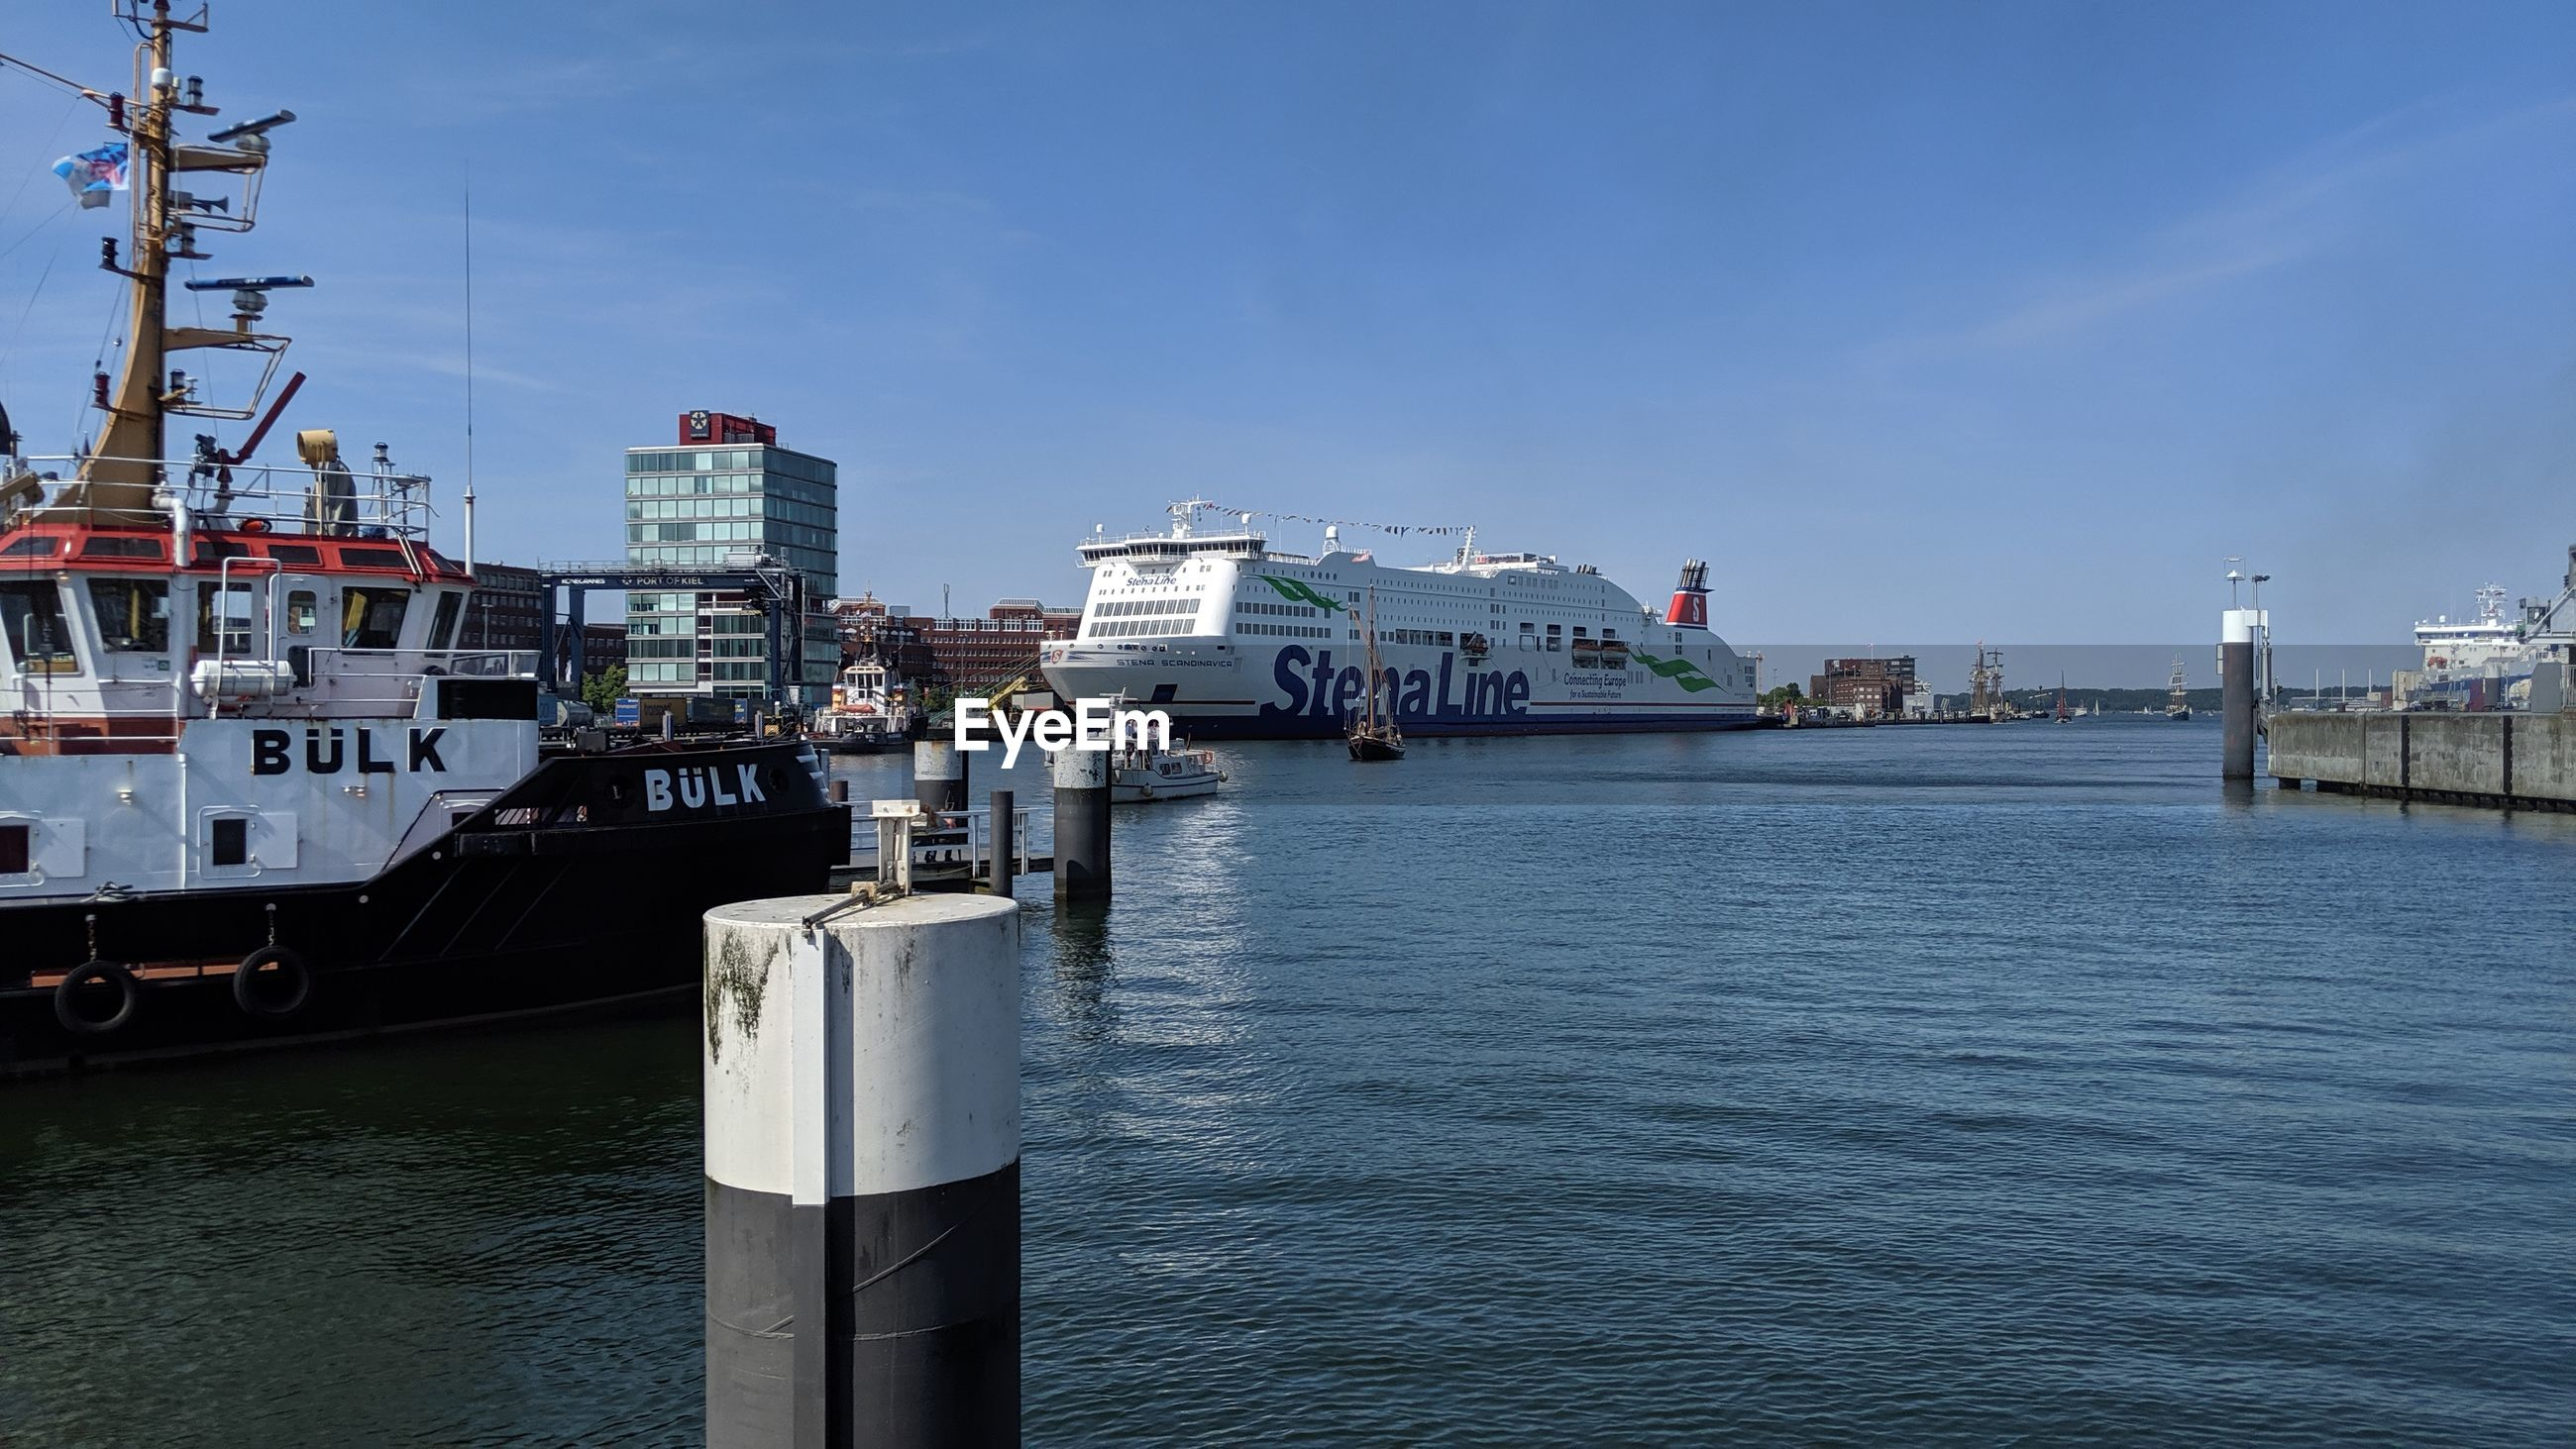 VIEW OF SHIP IN HARBOR AGAINST SKY